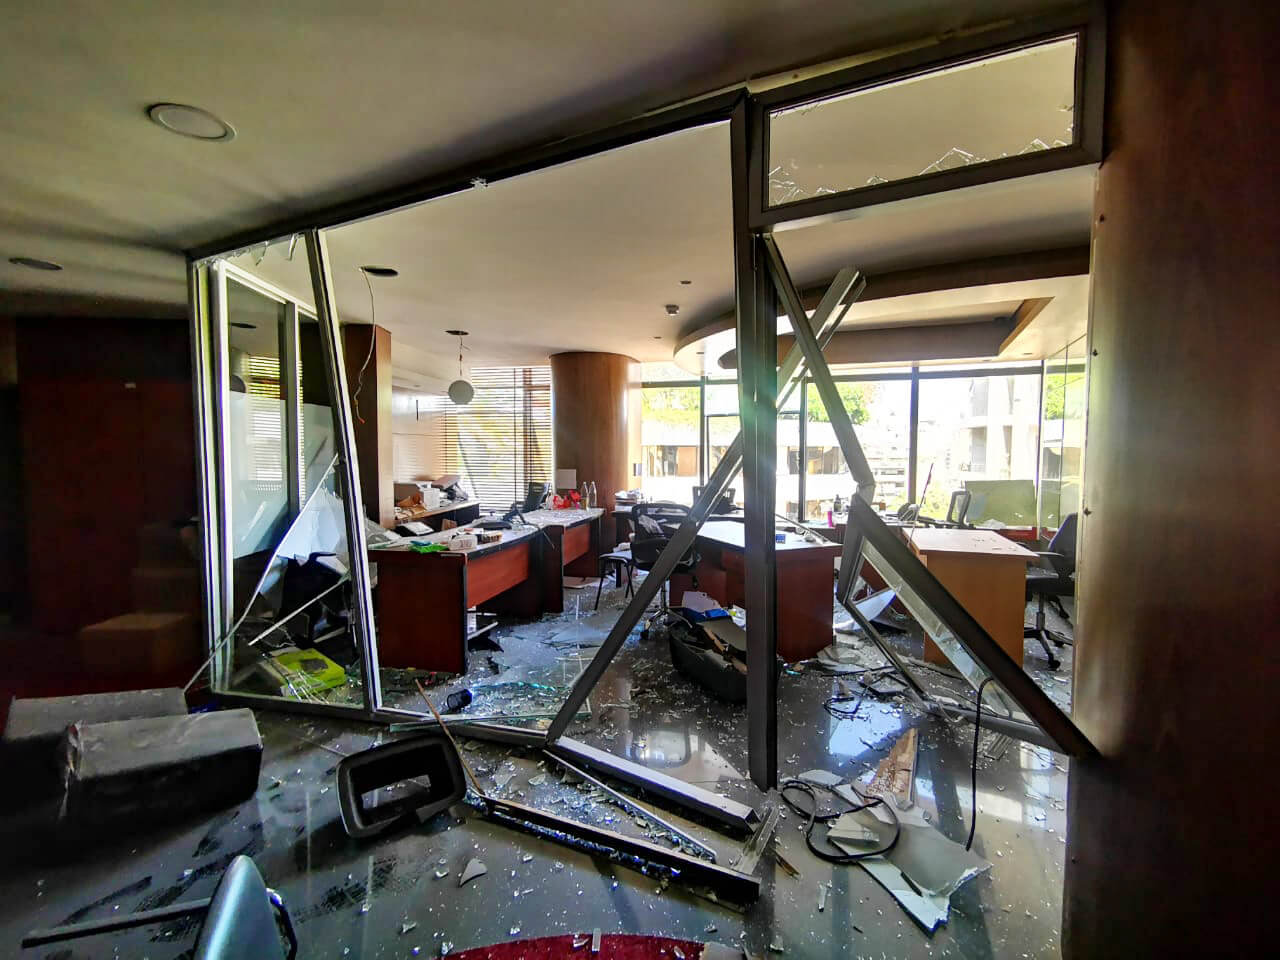 International Medical Corps' office following the explosion.